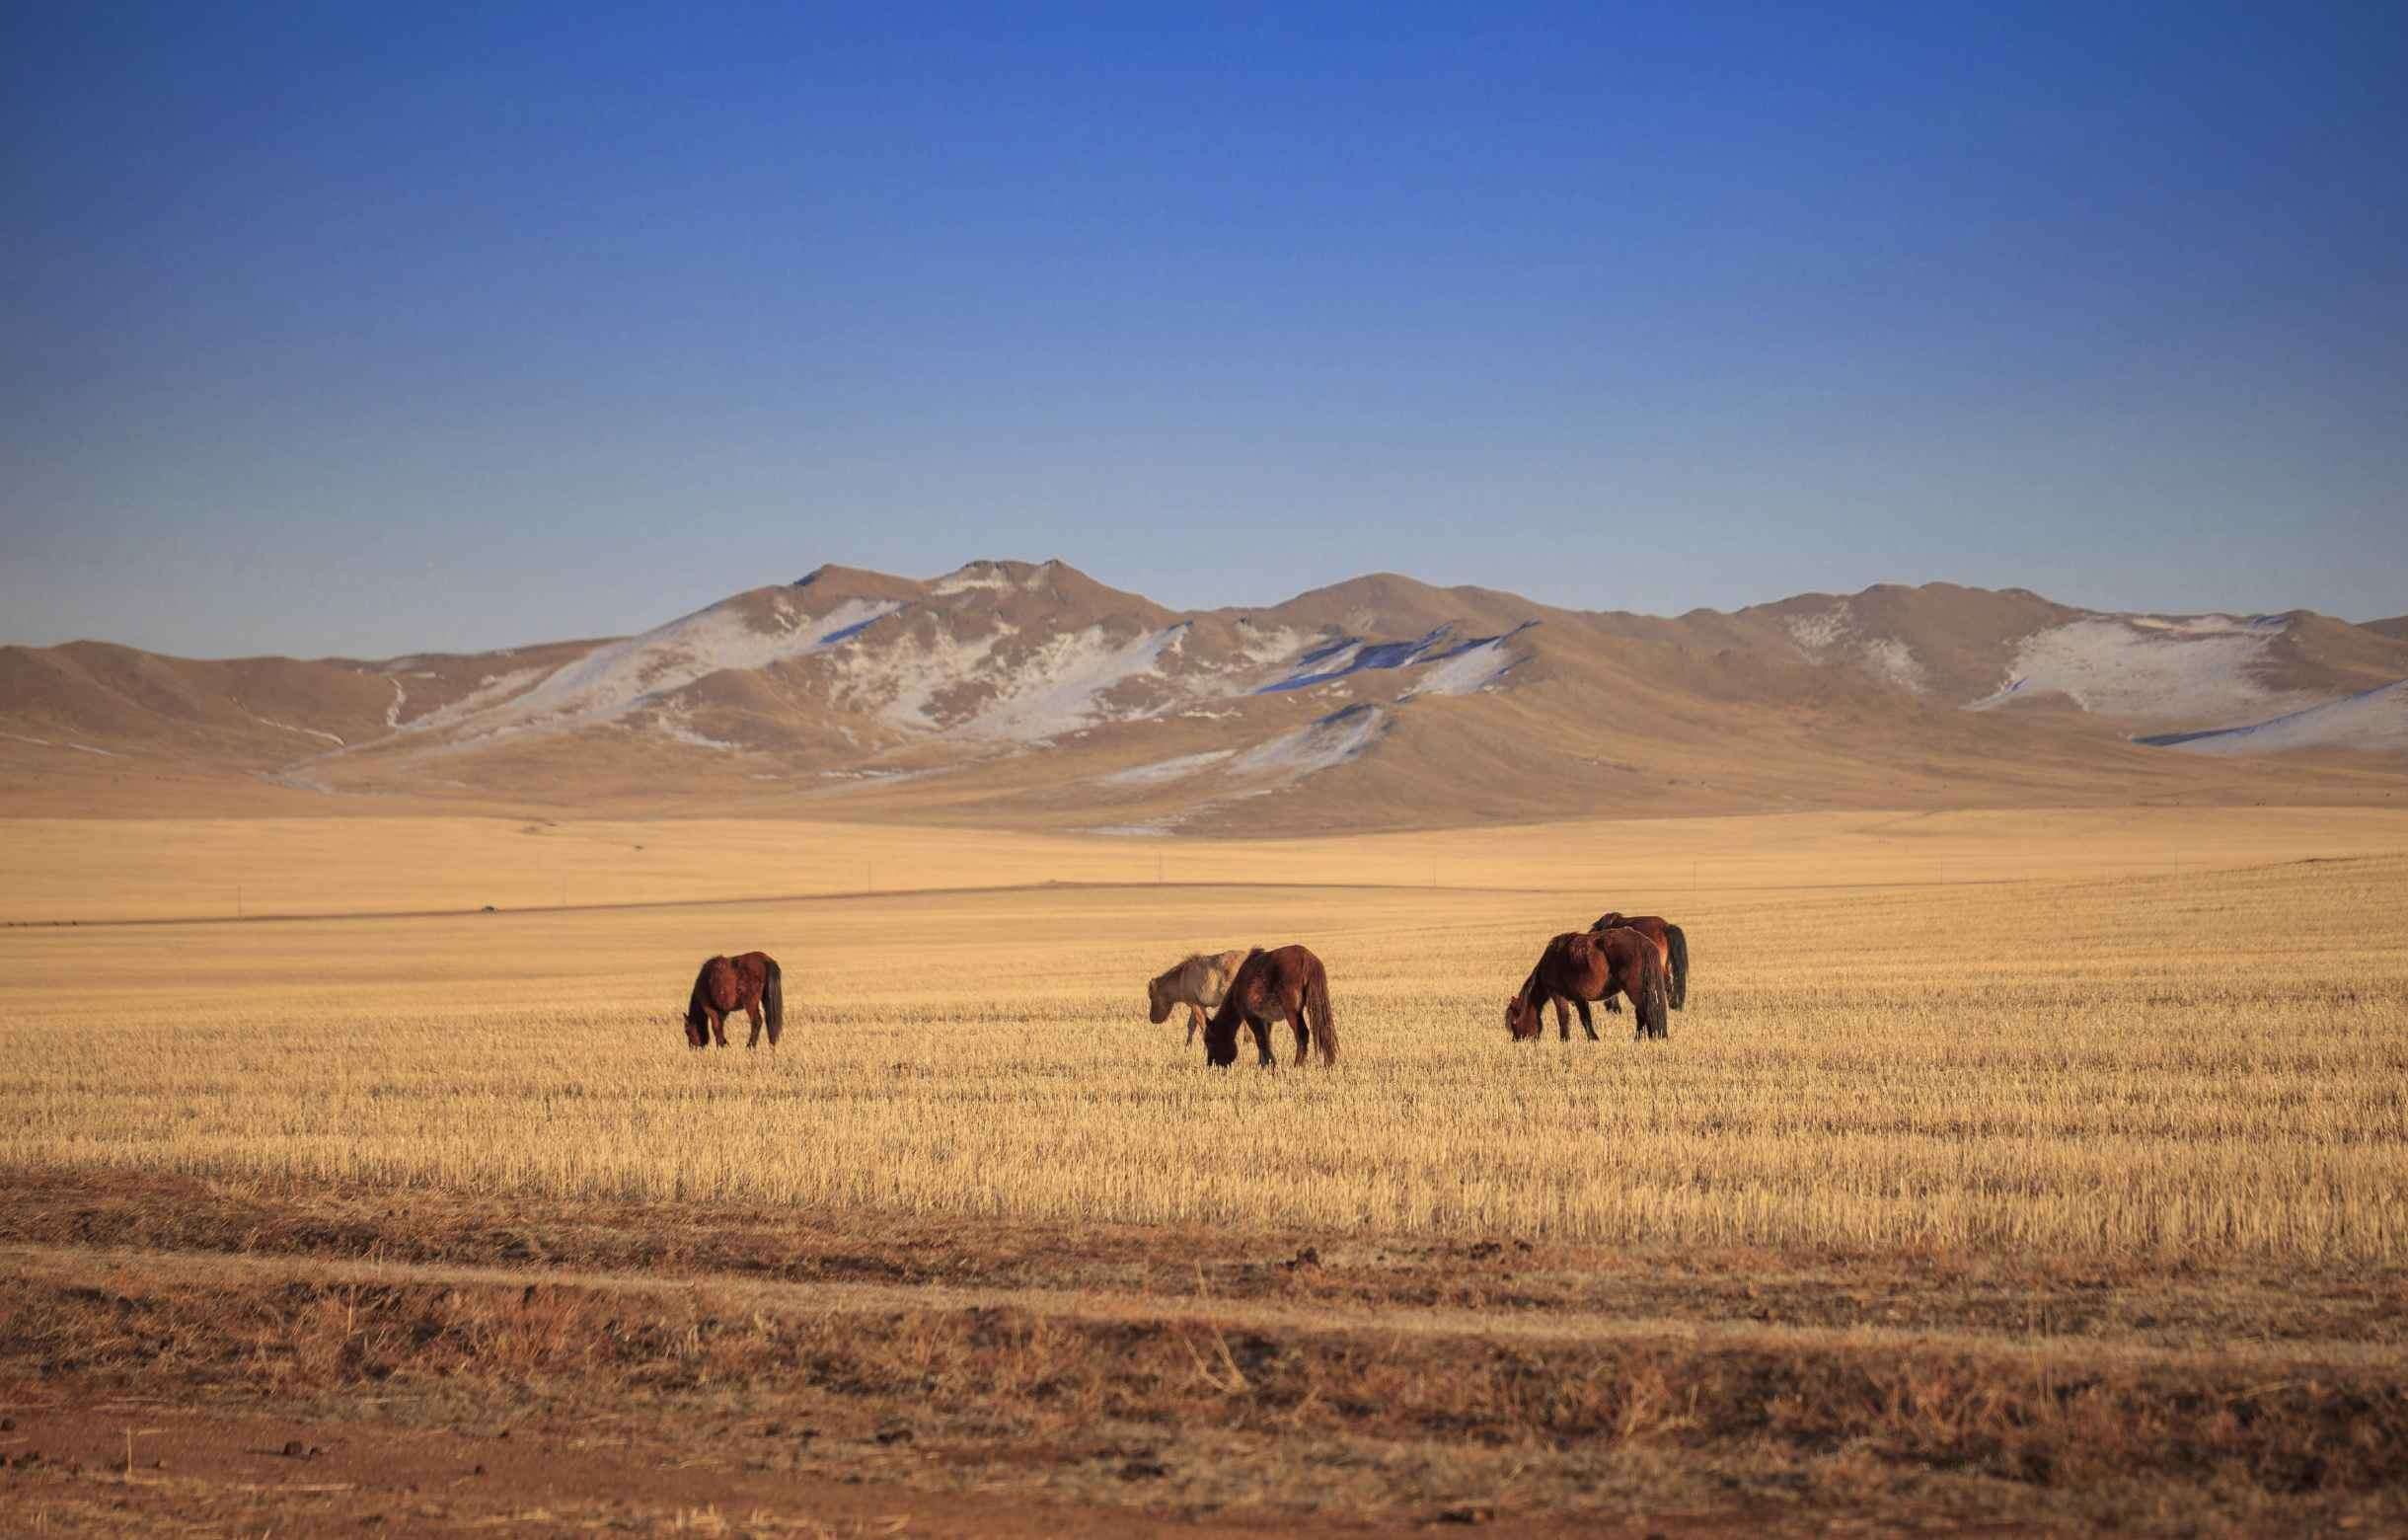 Northeast Asia - Mongolia and China Landscape